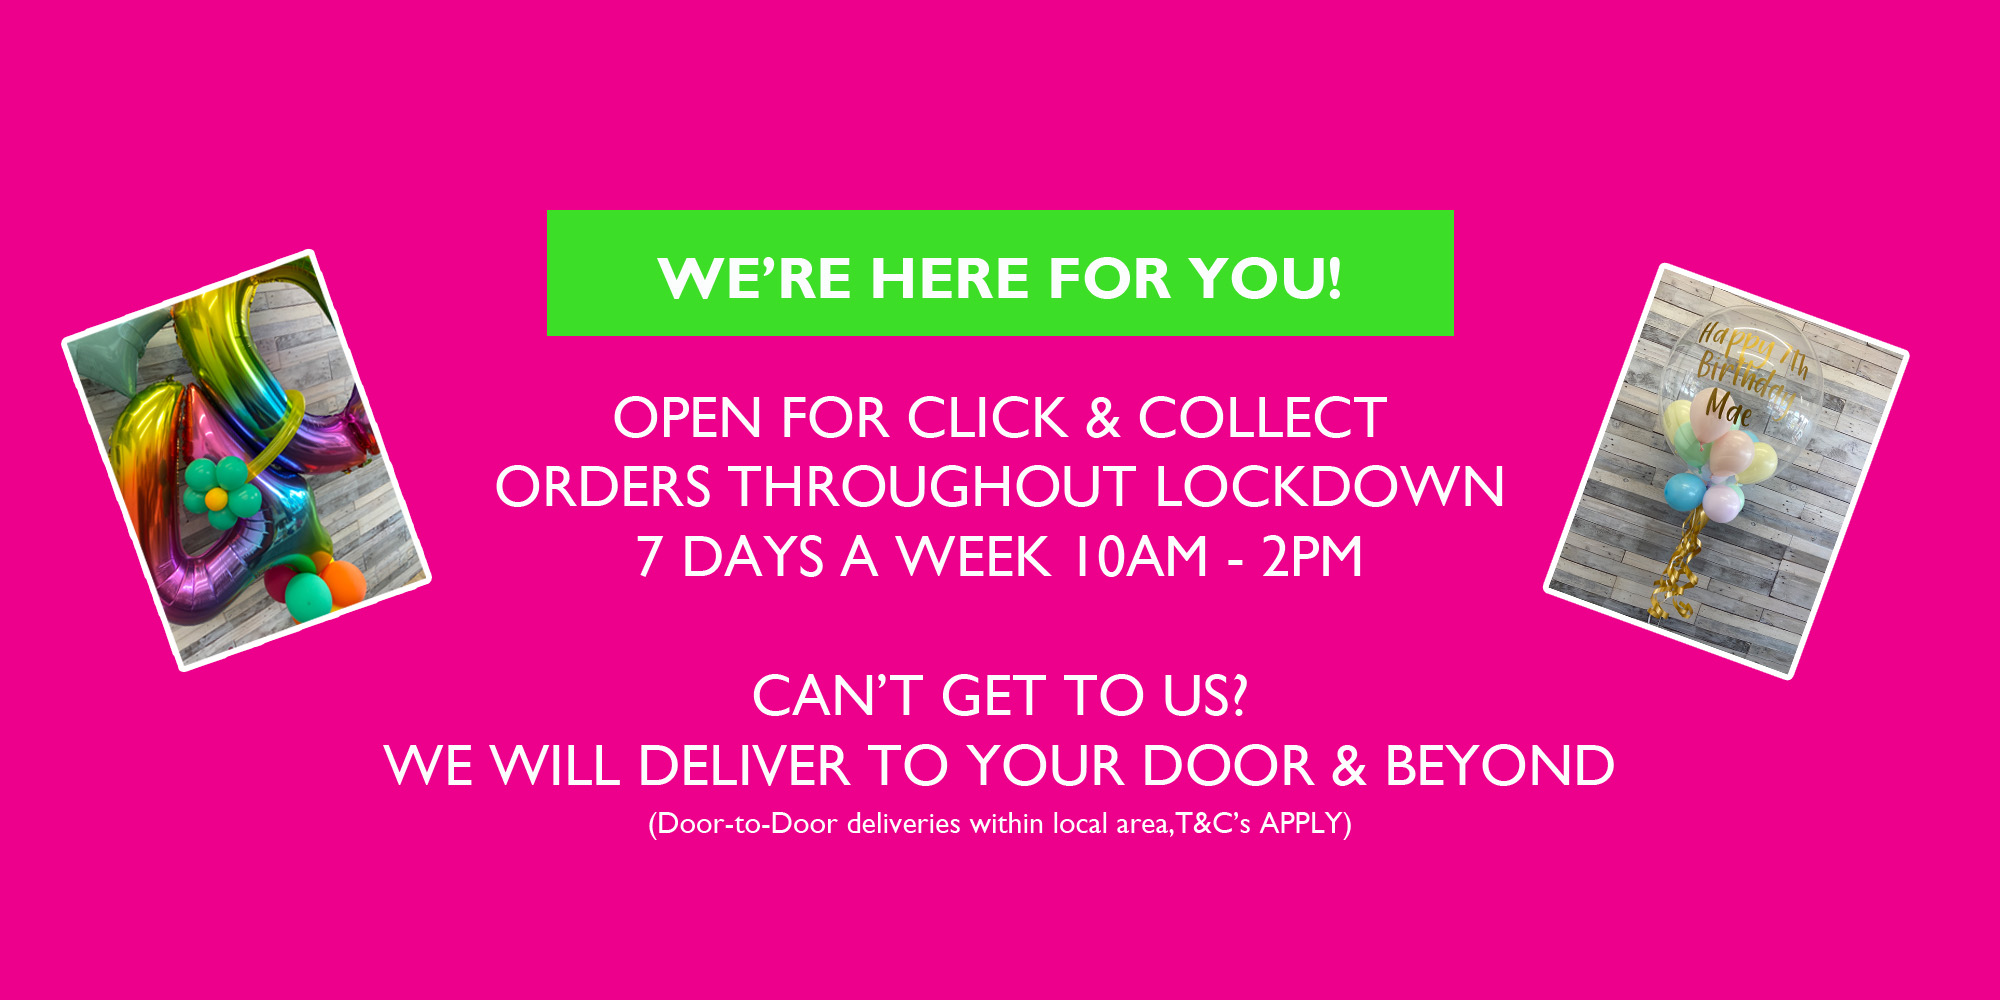 Click and collect orders through lockdown Safe non-contact deliveries